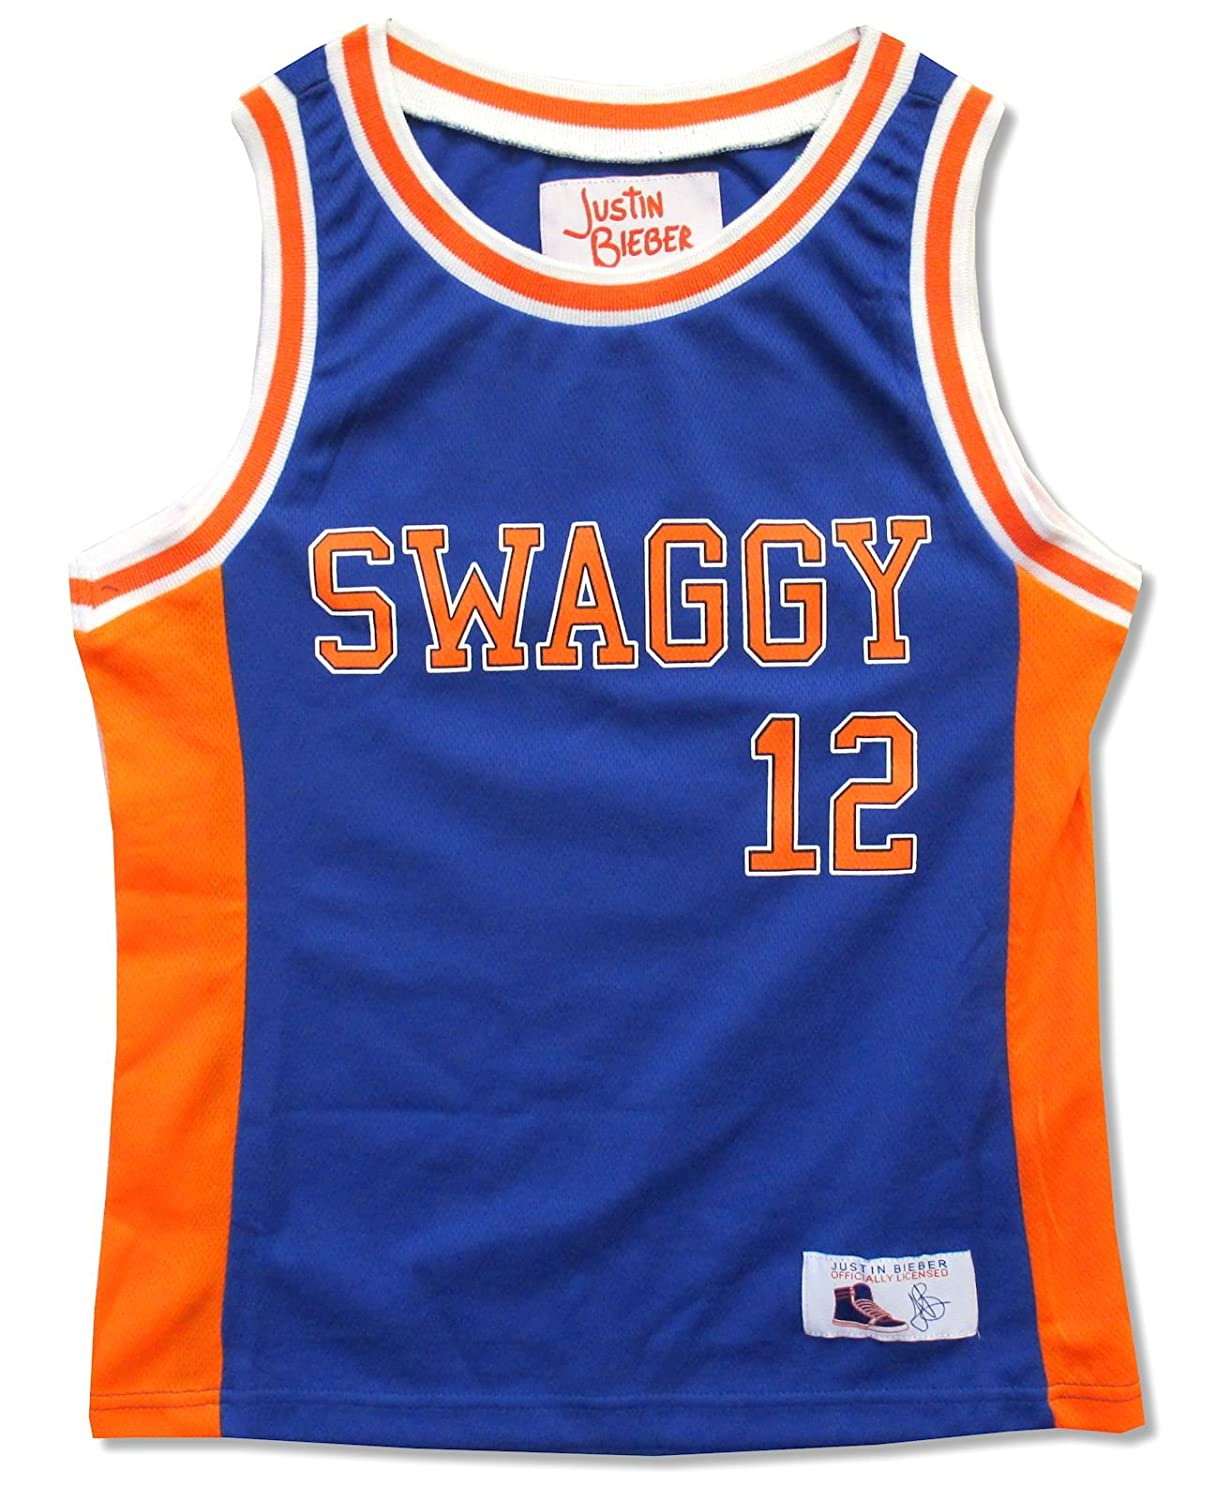 outlet store 7dbba d5a51 Amazon.com: Justin Bieber Youth Swaggy Blue & Orange ...